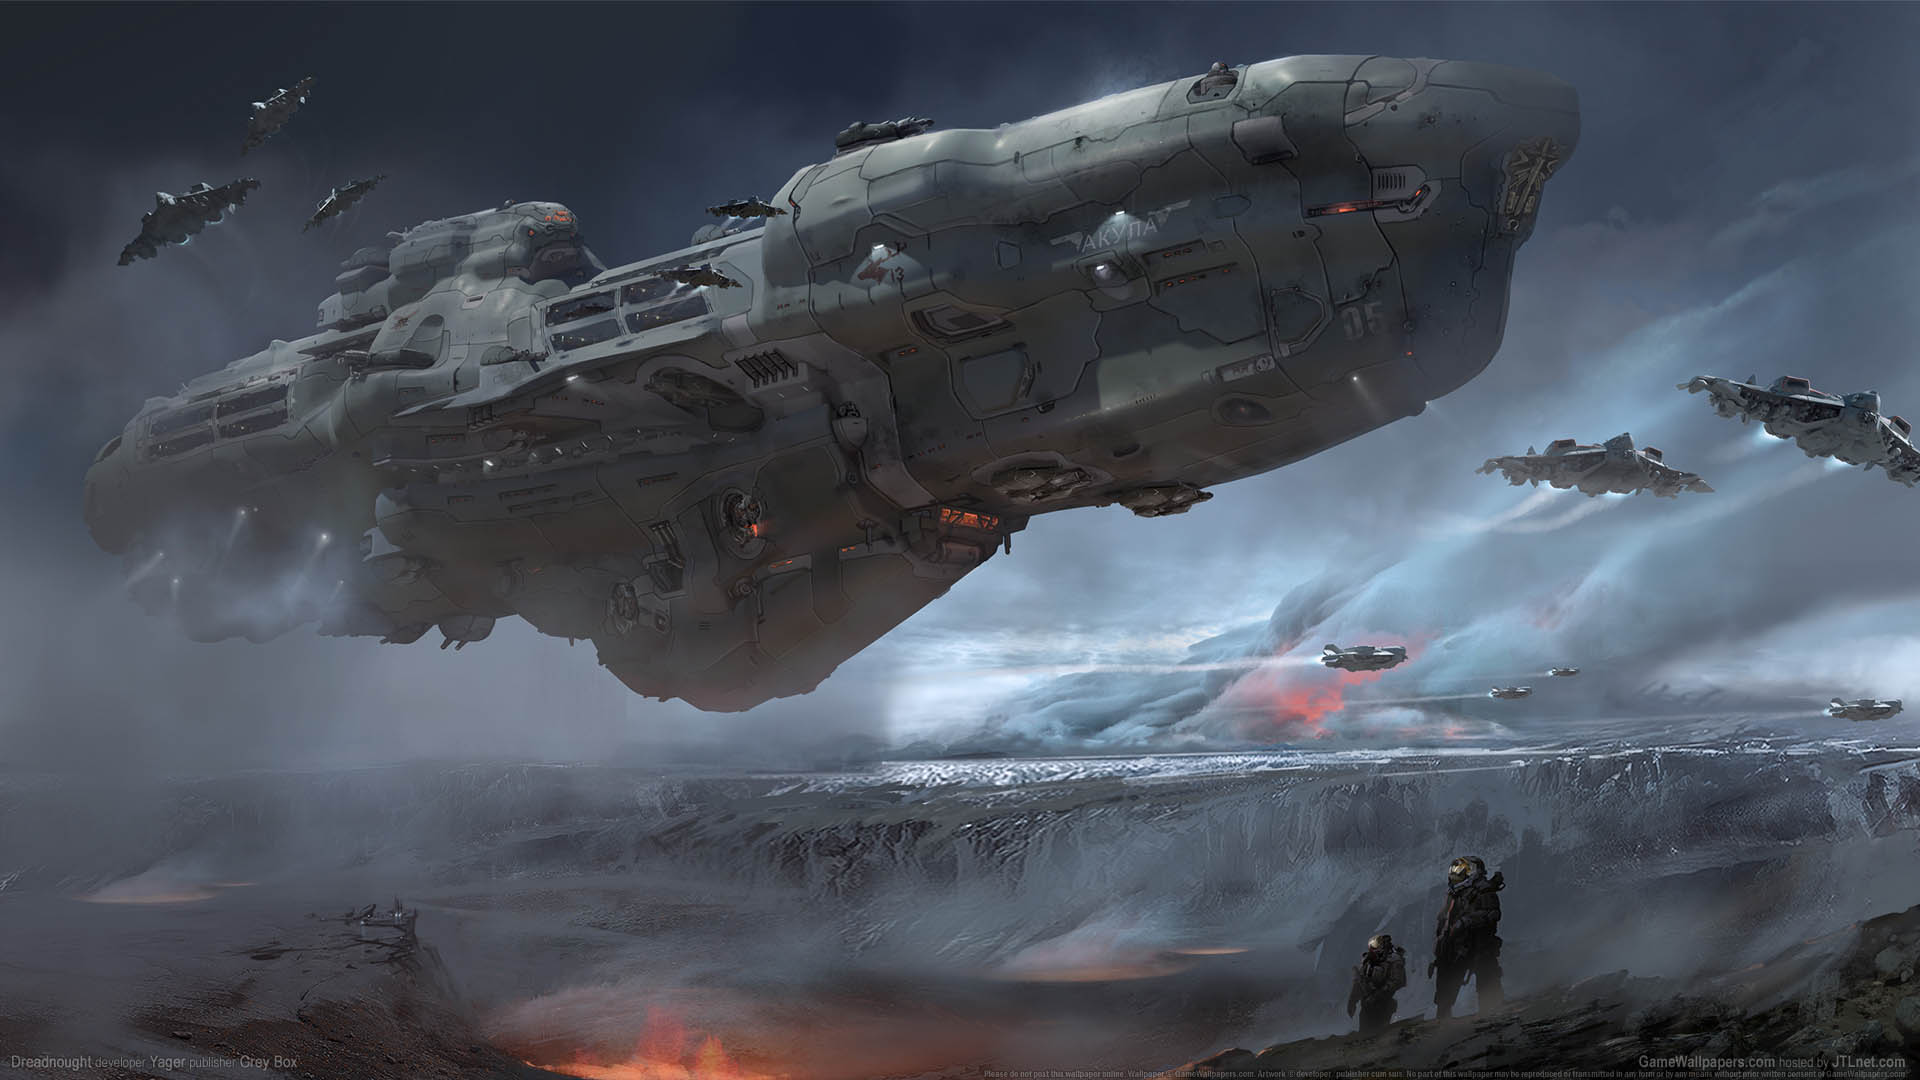 wallpaper_dreadnought_03_1920x1080.jpg